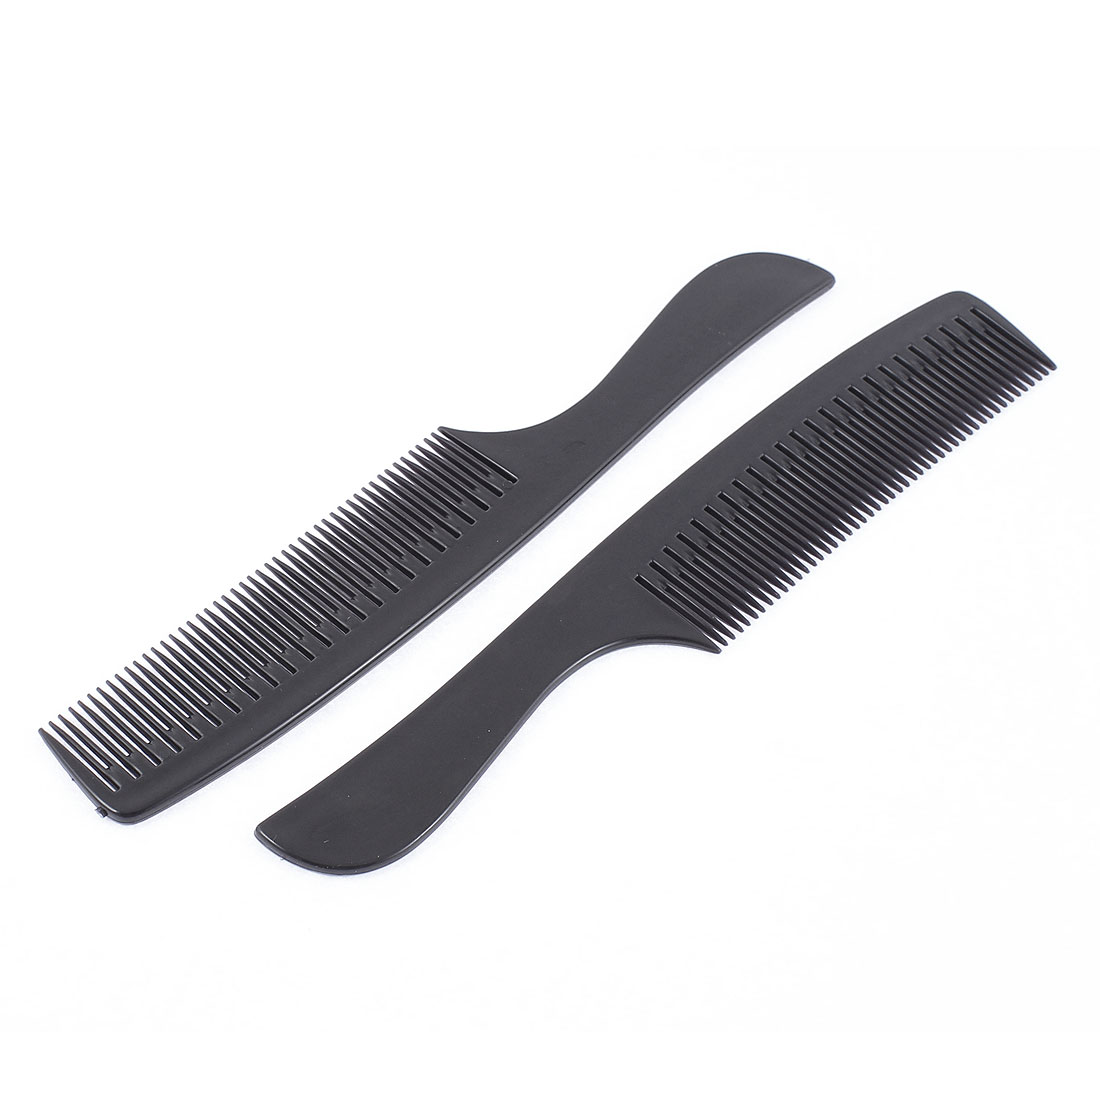 Black Plastic Hair Styling Combs 21cm Long 2 Pcs